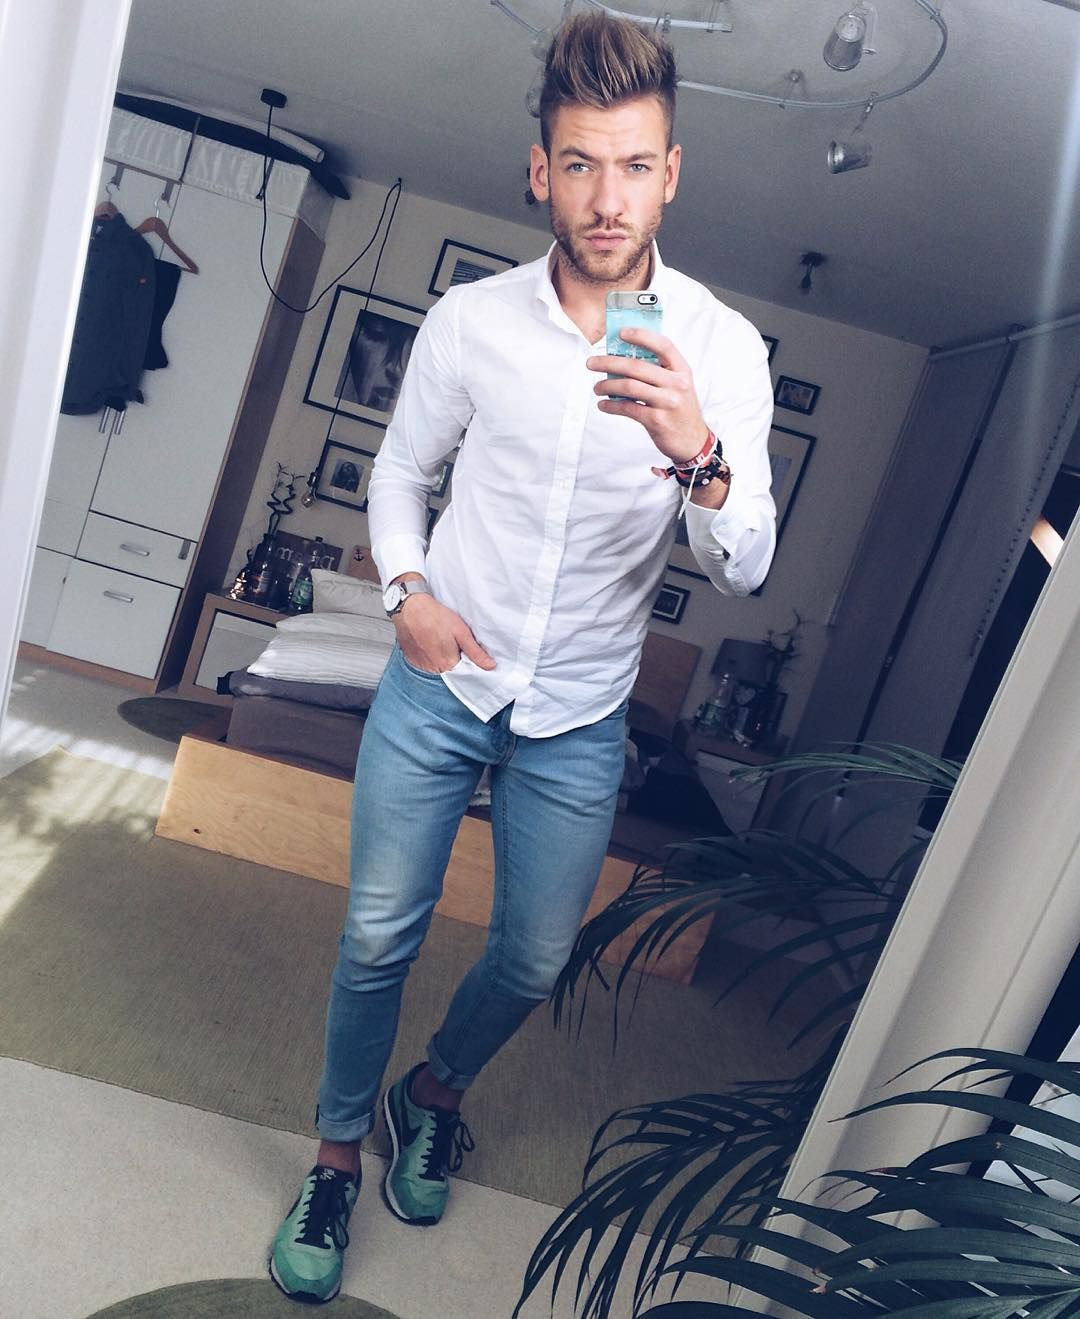 c47d76309 Casual outfit ideas for men Tendências Da Moda